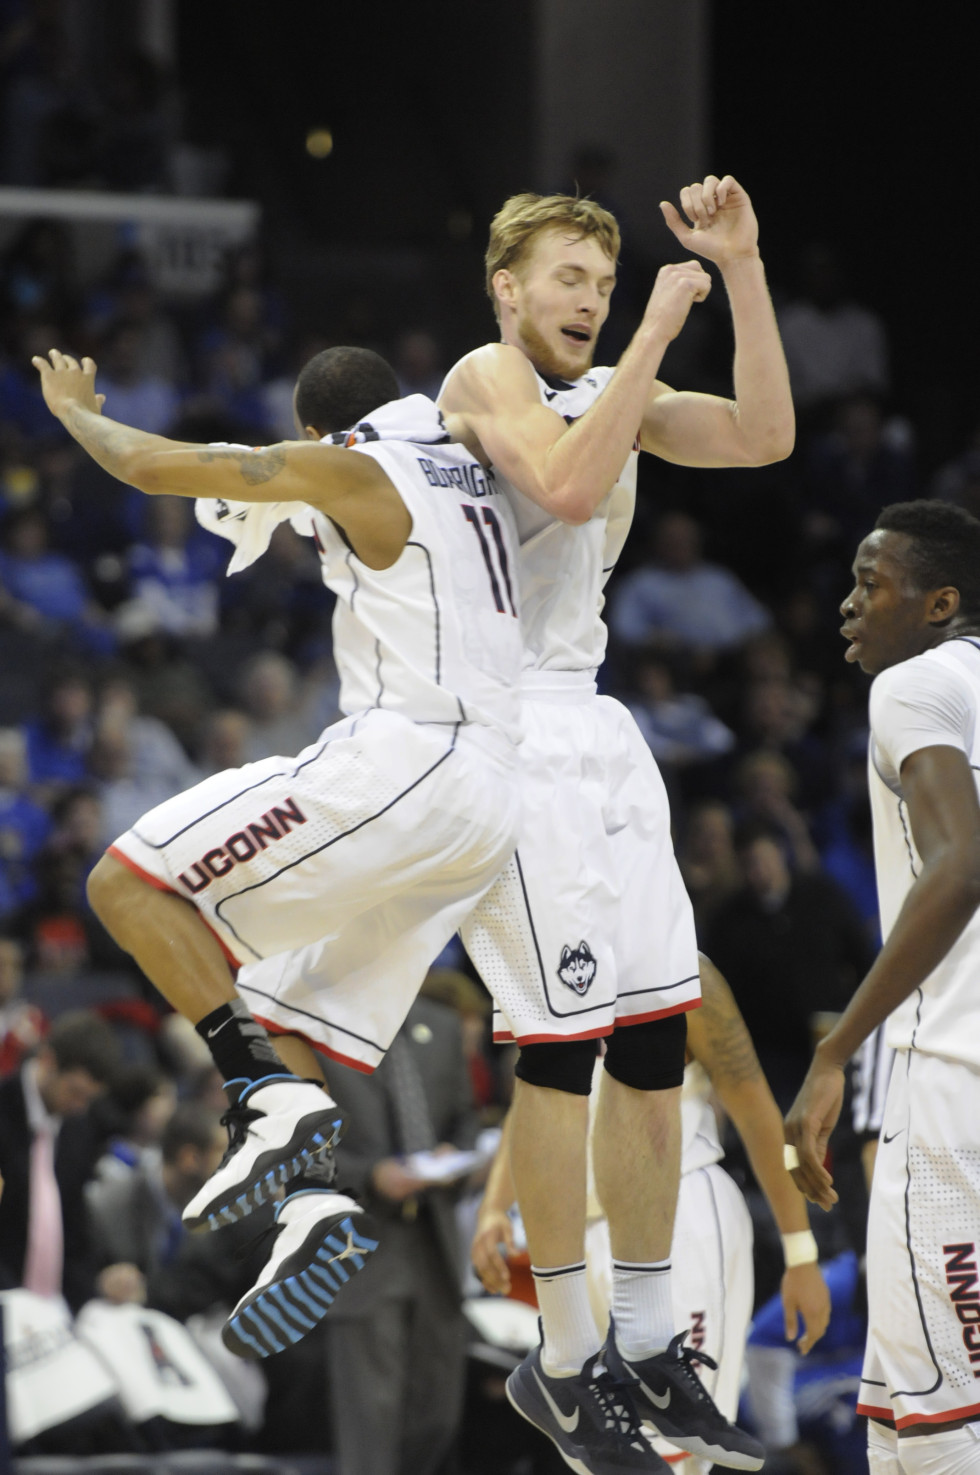 University of Connecticut Huskies guard/forward Niels Giffey, 5, and University of Connecticut Huskies guard Ryan Boatright, 11, celebrate during a break in the action after Giffey hit a three point shot during the second period.